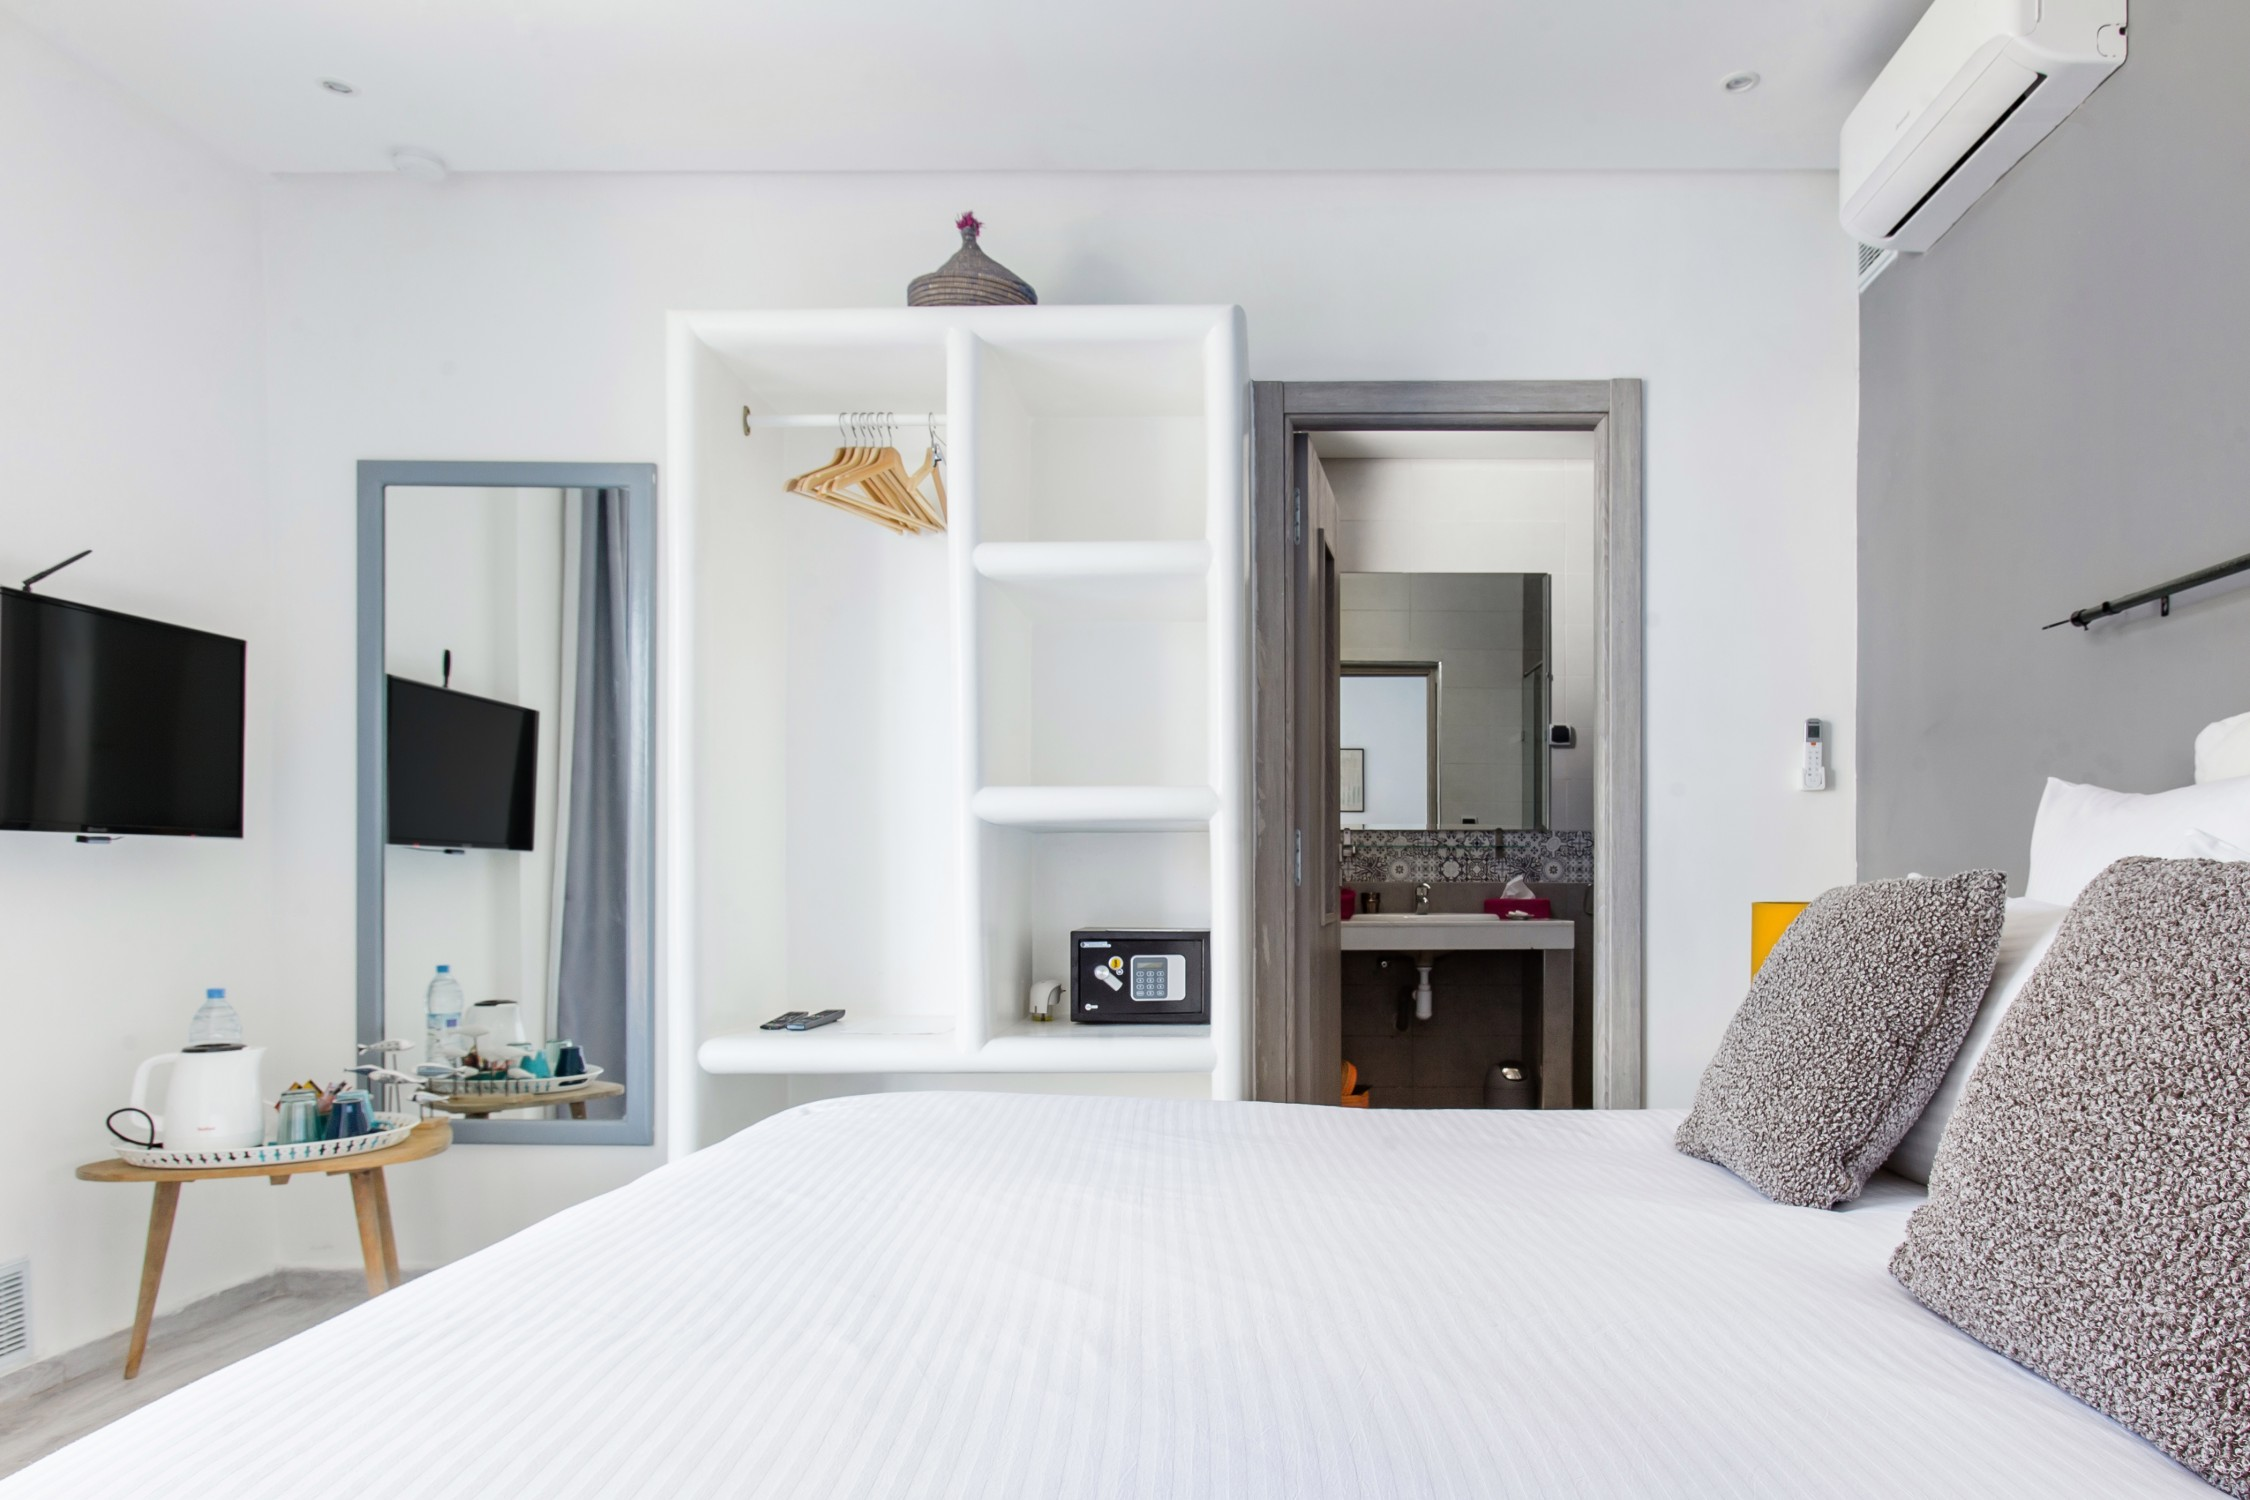 Morocco Airbnb 2020